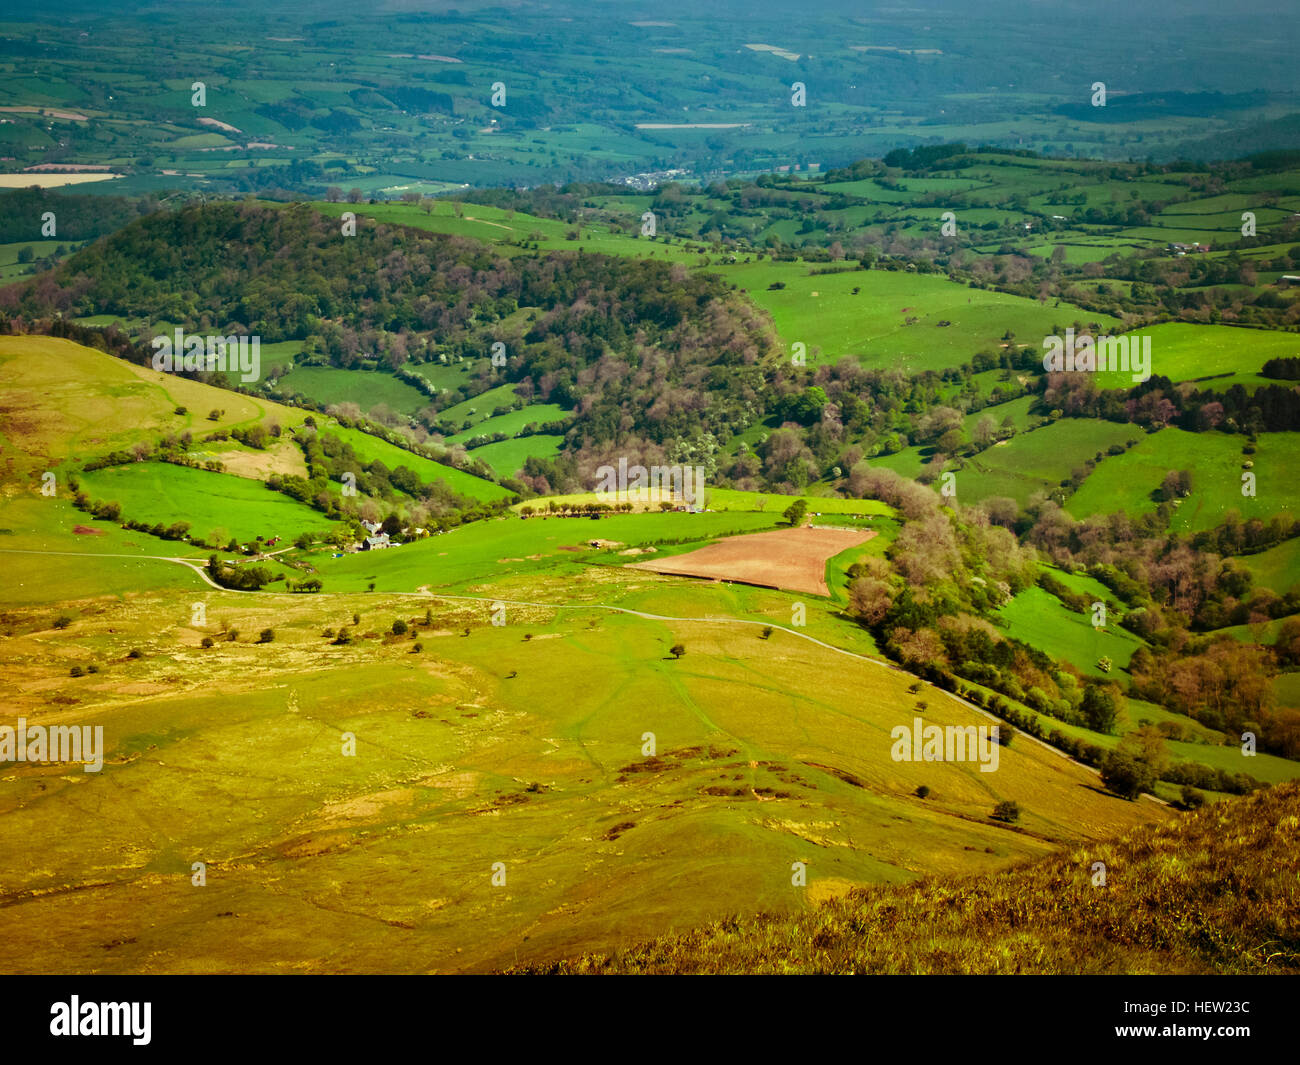 Countryside in the Wye Valley - South East Wales - Stock Image